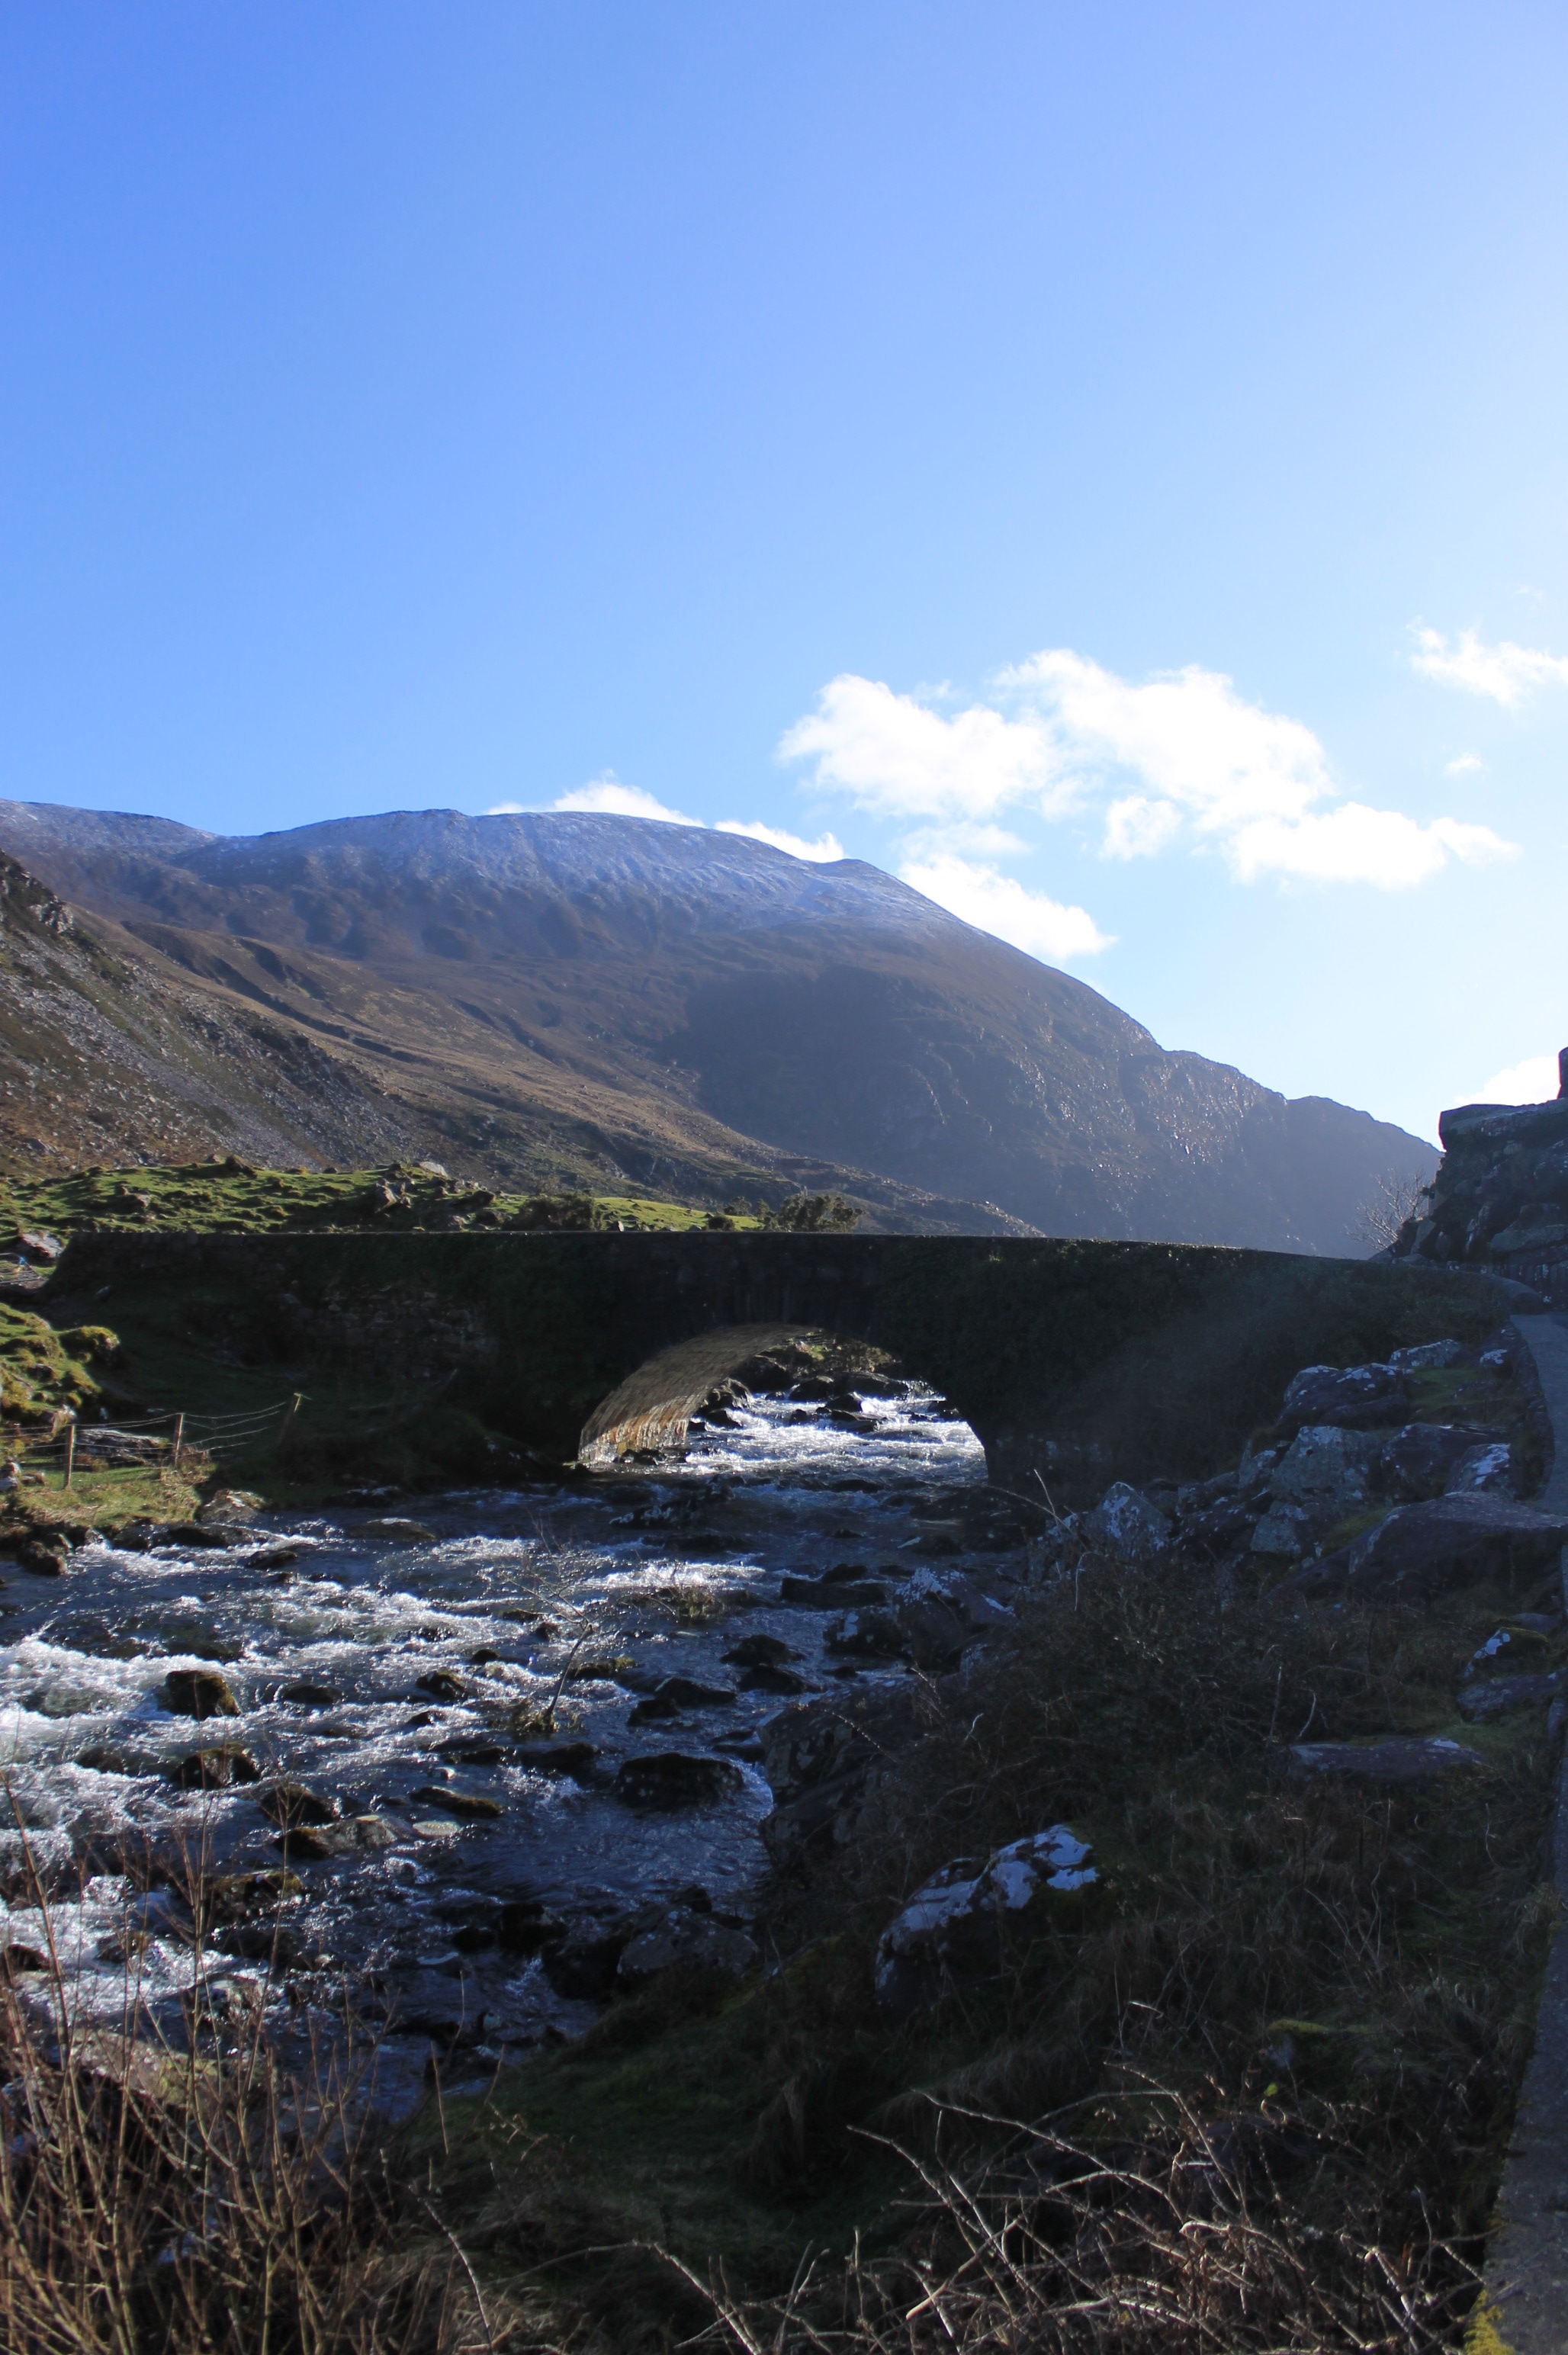 Bridge across the Gap of Dunloe